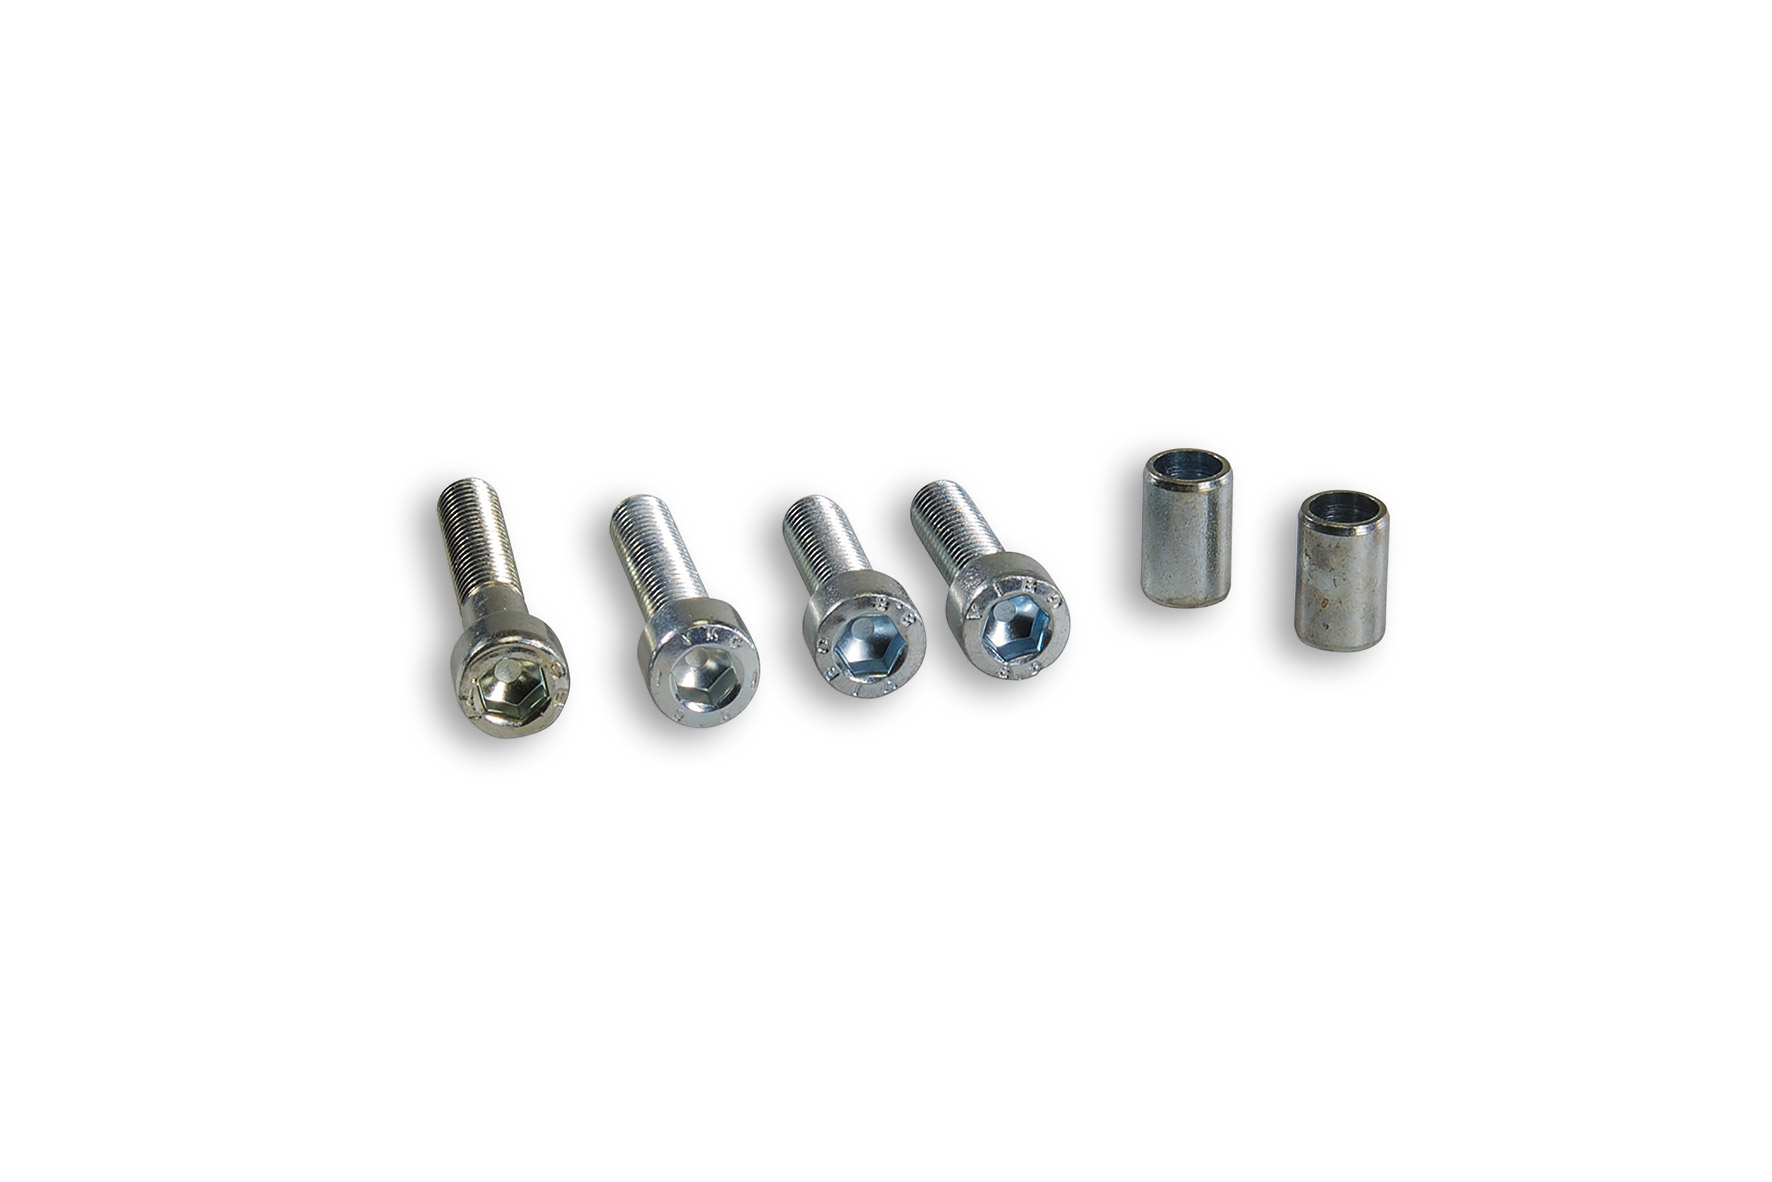 SCREWS/BUSHES KIT for HEAD FIX. MBK G2